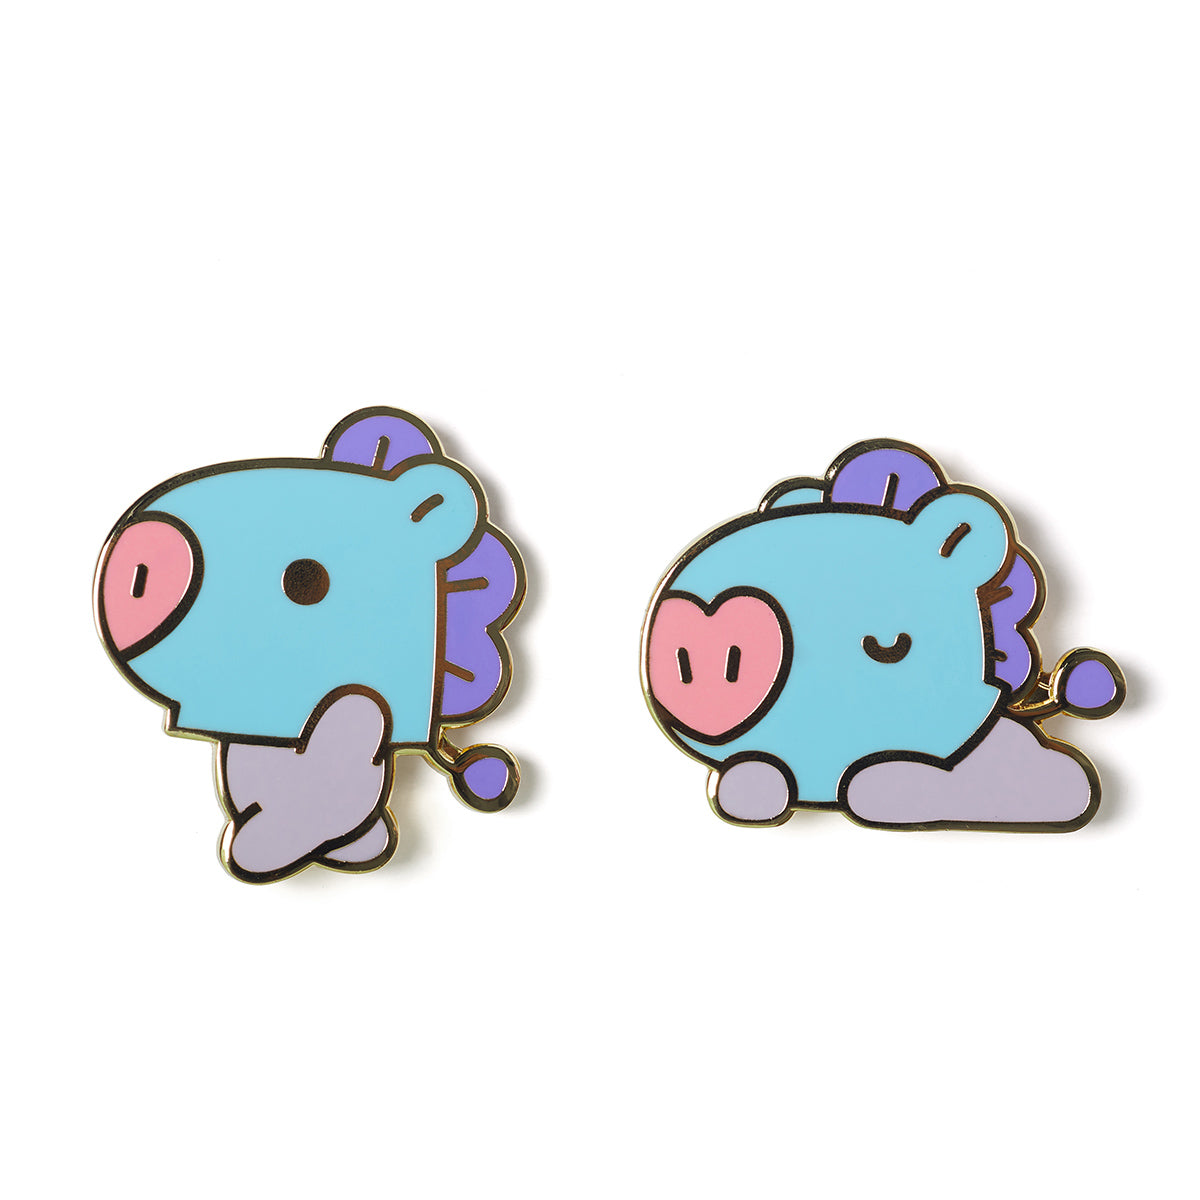 BT21 MANG Baby Metal Badge